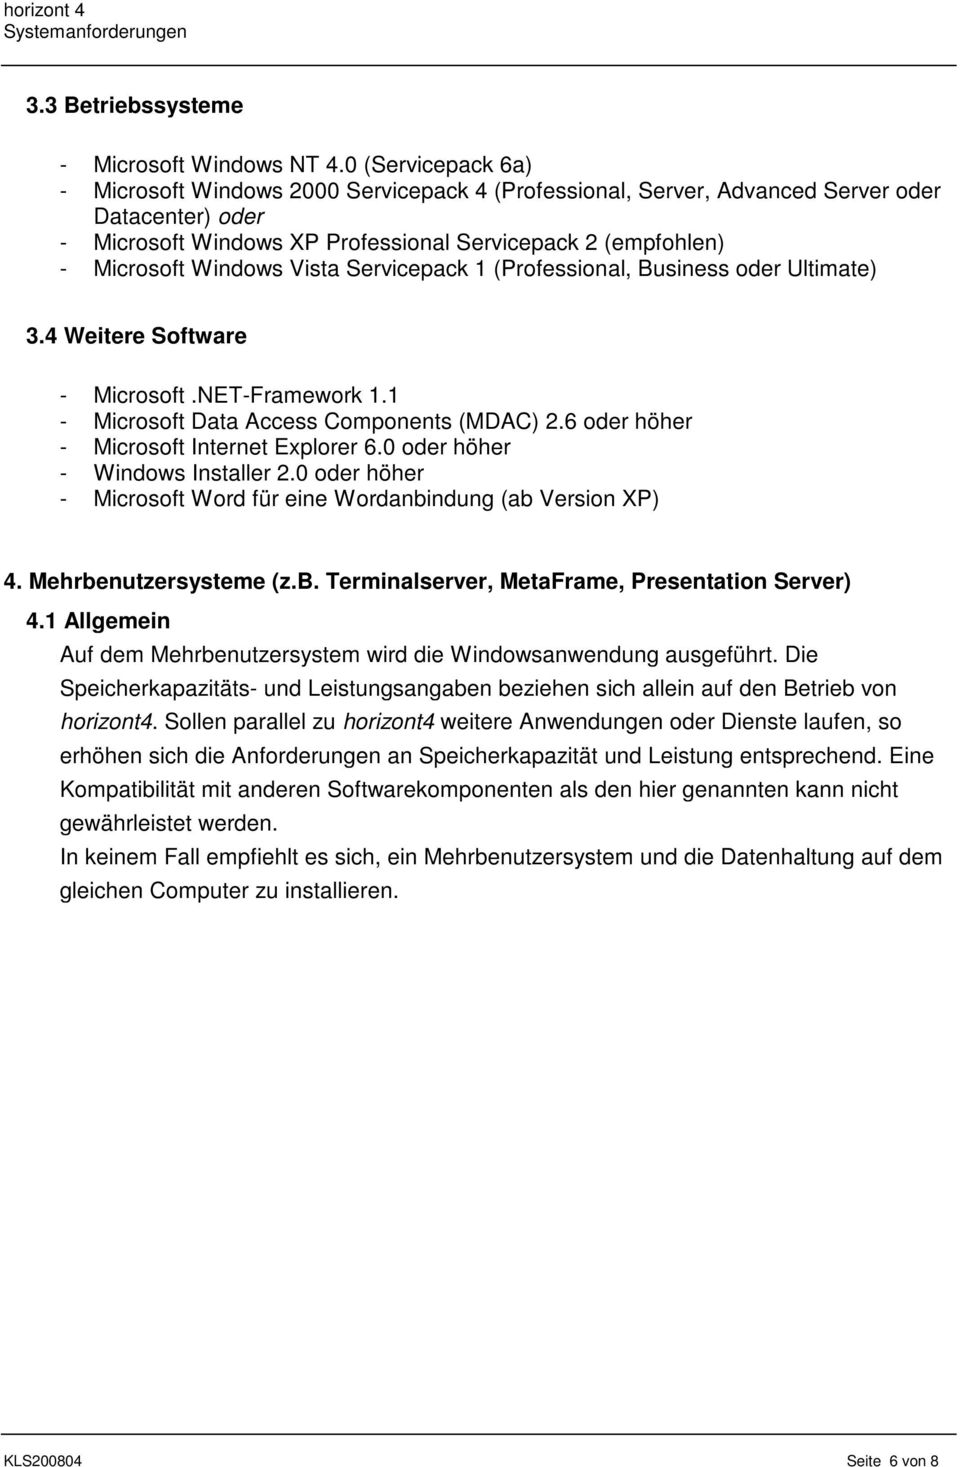 Windows Vista Servicepack 1 (Professional, Business oder Ultimate) 3.4 Weitere Software - Microsoft.NET-Framework 1.1 - Microsoft Data Access Components (MDAC) 2.